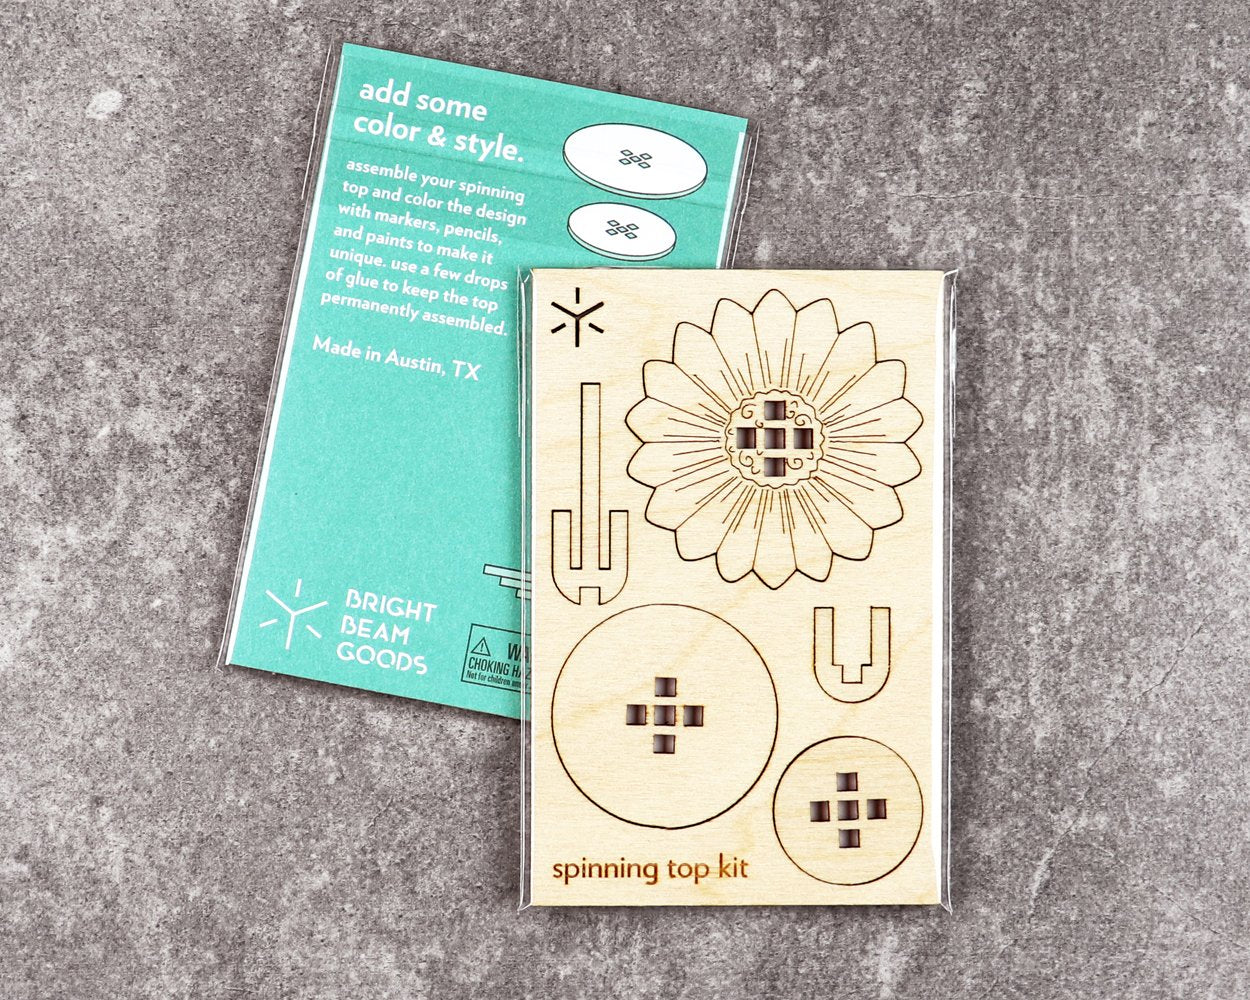 Daisy spinning top kit in packaging